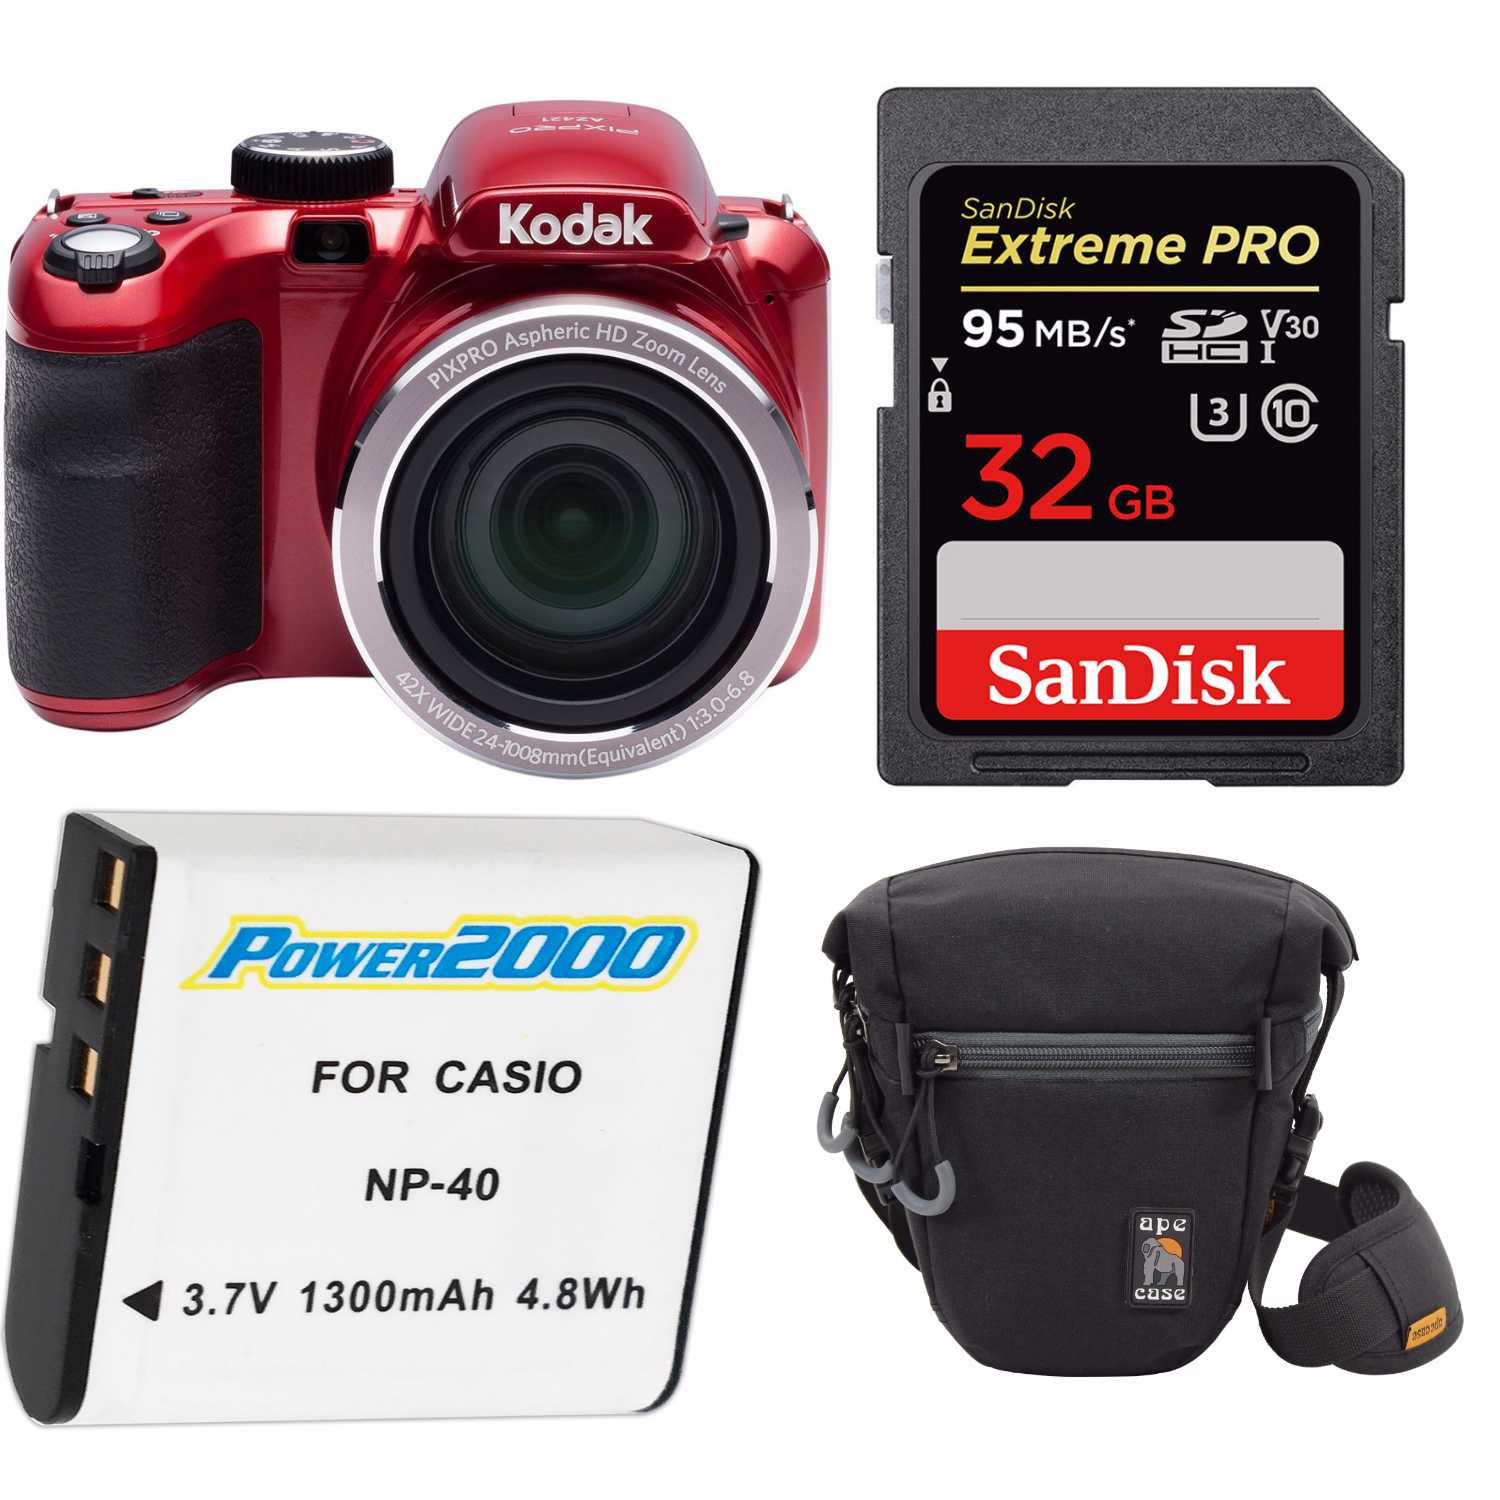 KODAK PIXPRO AZ421 16MP Digital Camera(Red) with Holster Case and 32GB SD Bundle